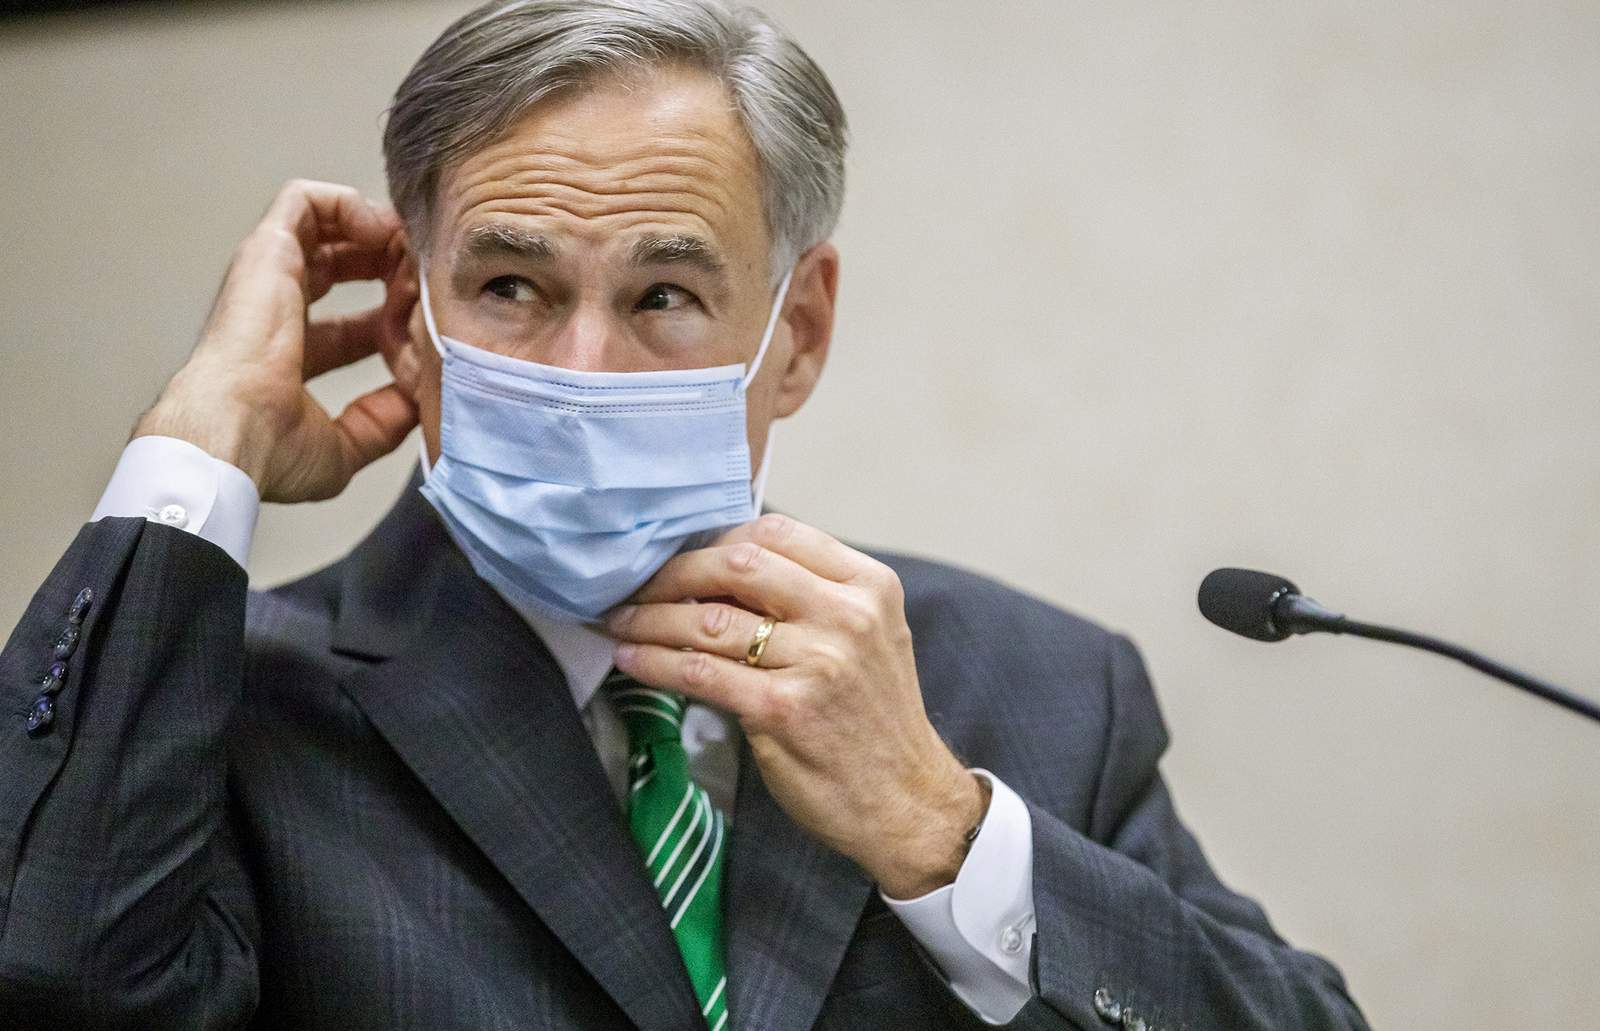 Virus soaring again in Texas, but this time Gov. Abbott says no lockdown is coming 6